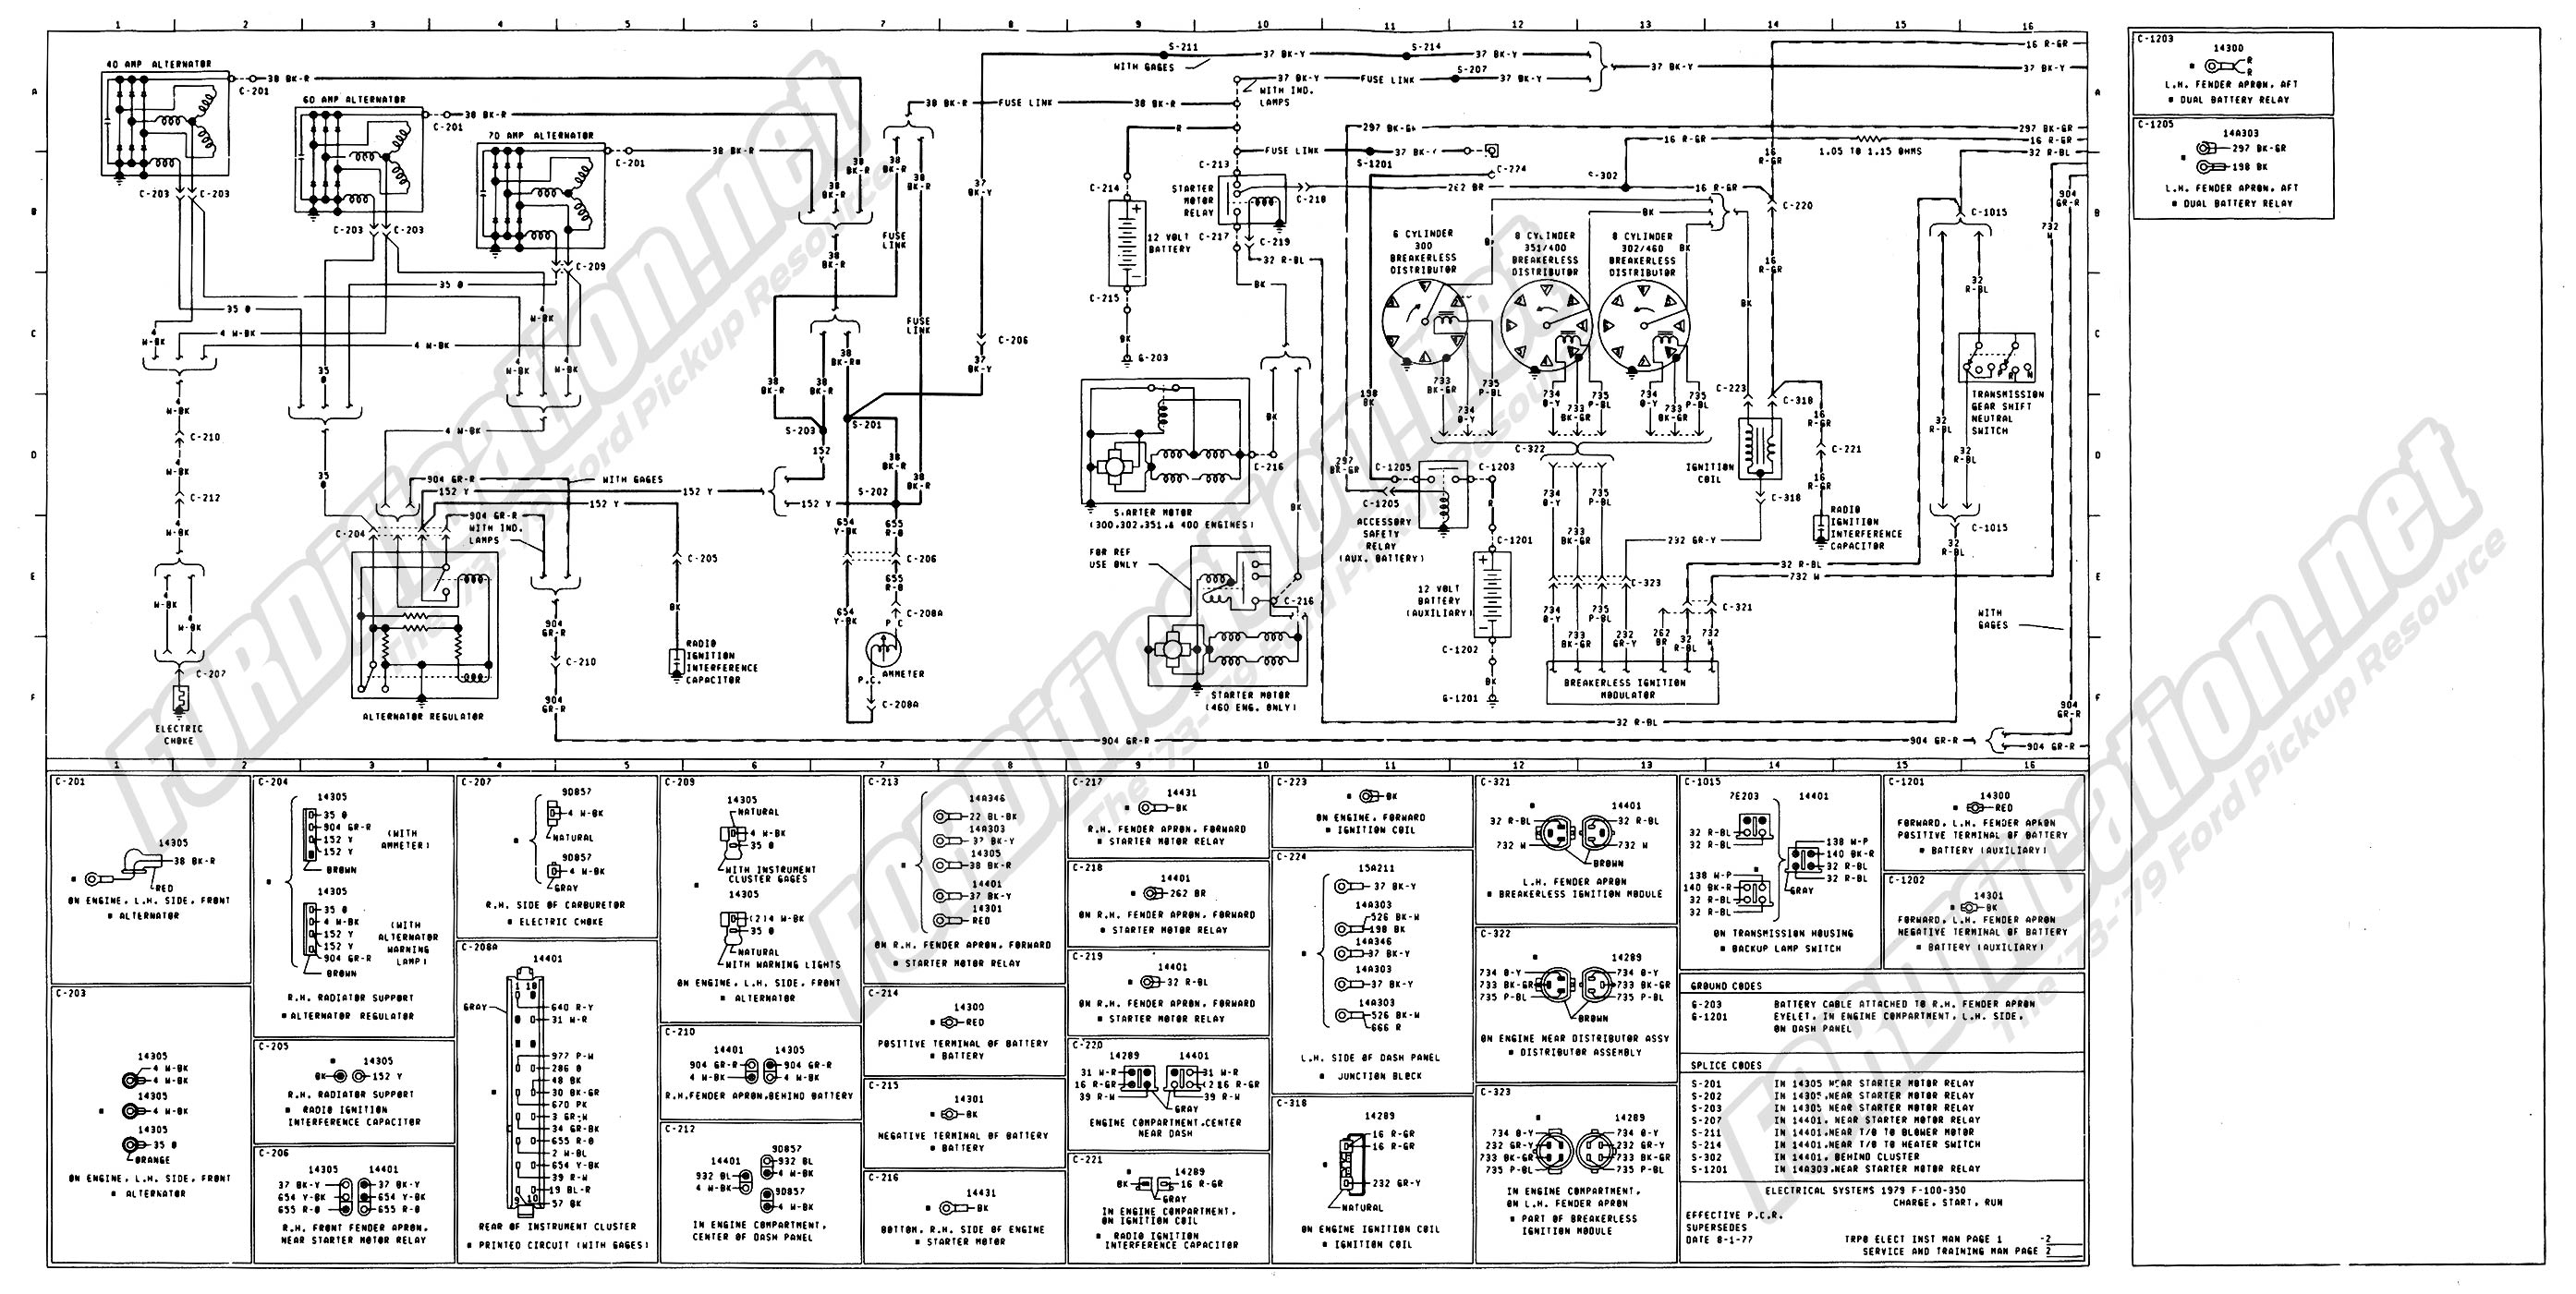 Mack Fuse Panel | Wiring Diagram Database Mack Ctp B Truck Wiring Schematics on mack truck engine, mack truck fuse, mack truck wiring diagram pdf, mack rd688s wiring-diagram, mack truck battery wiring diagram, mack truck fuel system diagram, mack truck gauges, mack truck brake light, mack truck controls, mack truck pickup, mack truck air line diagram, mack fuse box diagram, mack truck knock sensor, mack truck parts schematic, mack truck maintenance, mack truck air compressor, mack truck parts list, mack truck electrical, mack truck wiring harness, mack truck service manuals,